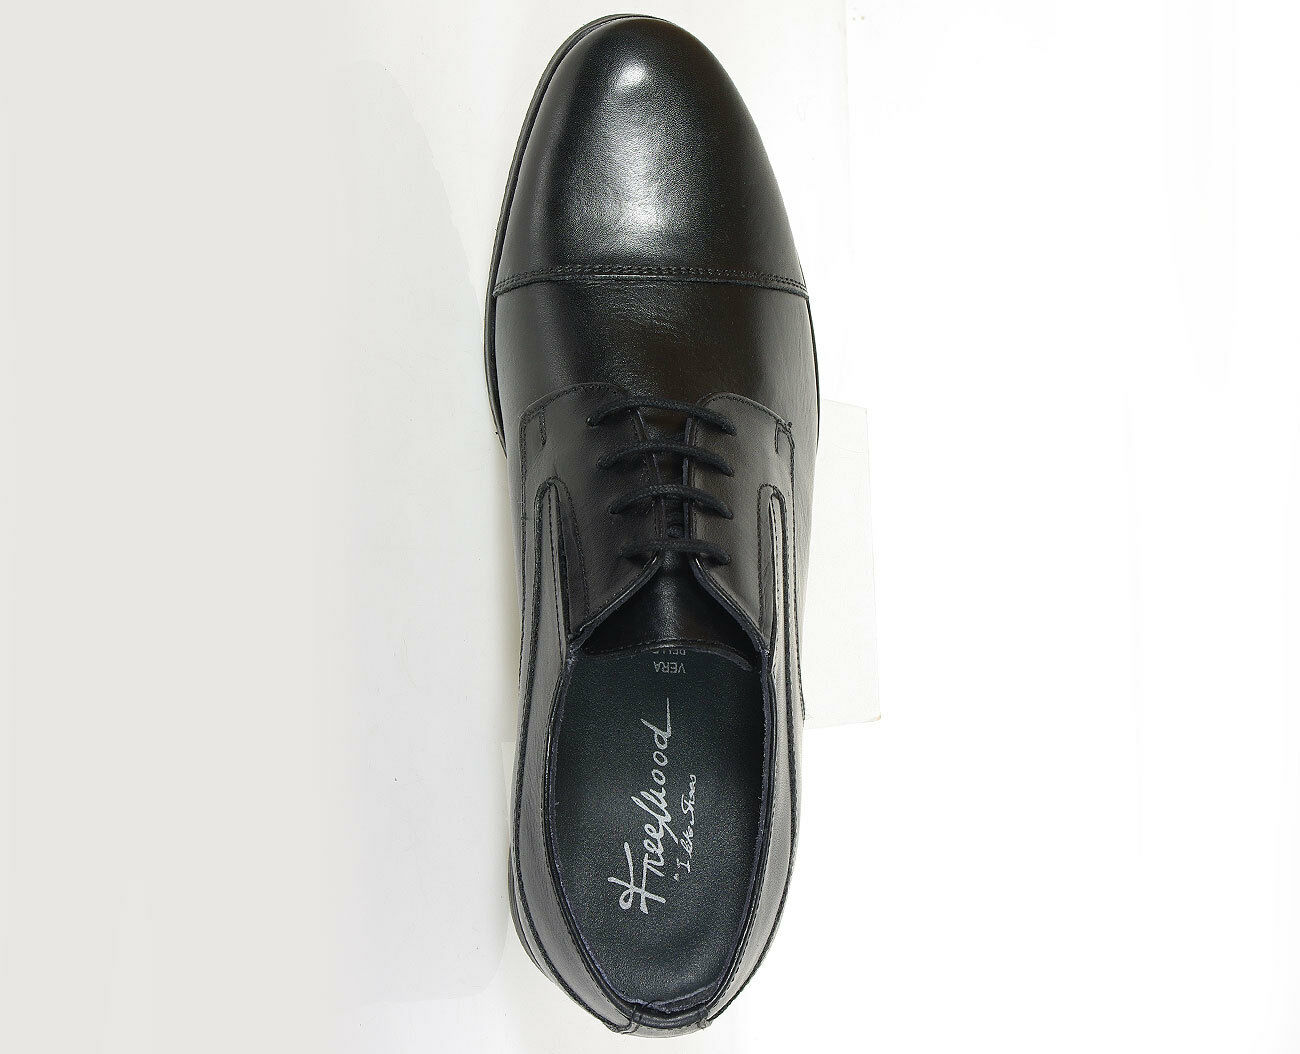 FREEMOOD shoes A050 VITELLO-FIORE NERO formal shoes FREEMOOD Made in Italy SALE 181ab9